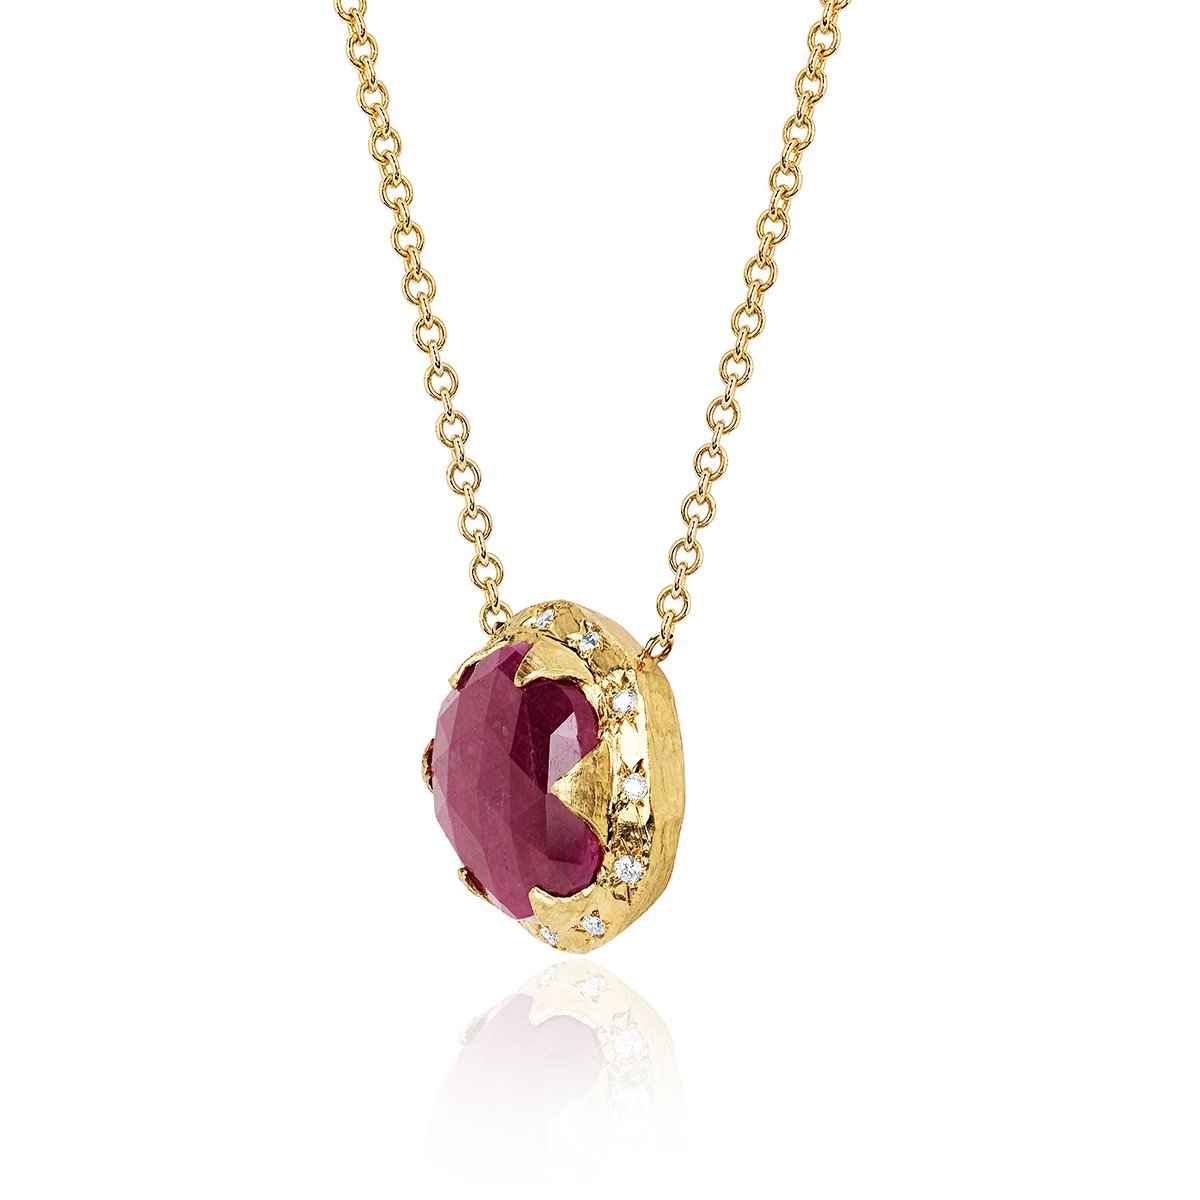 18k Rose Cut Oval Queen Ruby Necklace with Sprinkled Diamonds